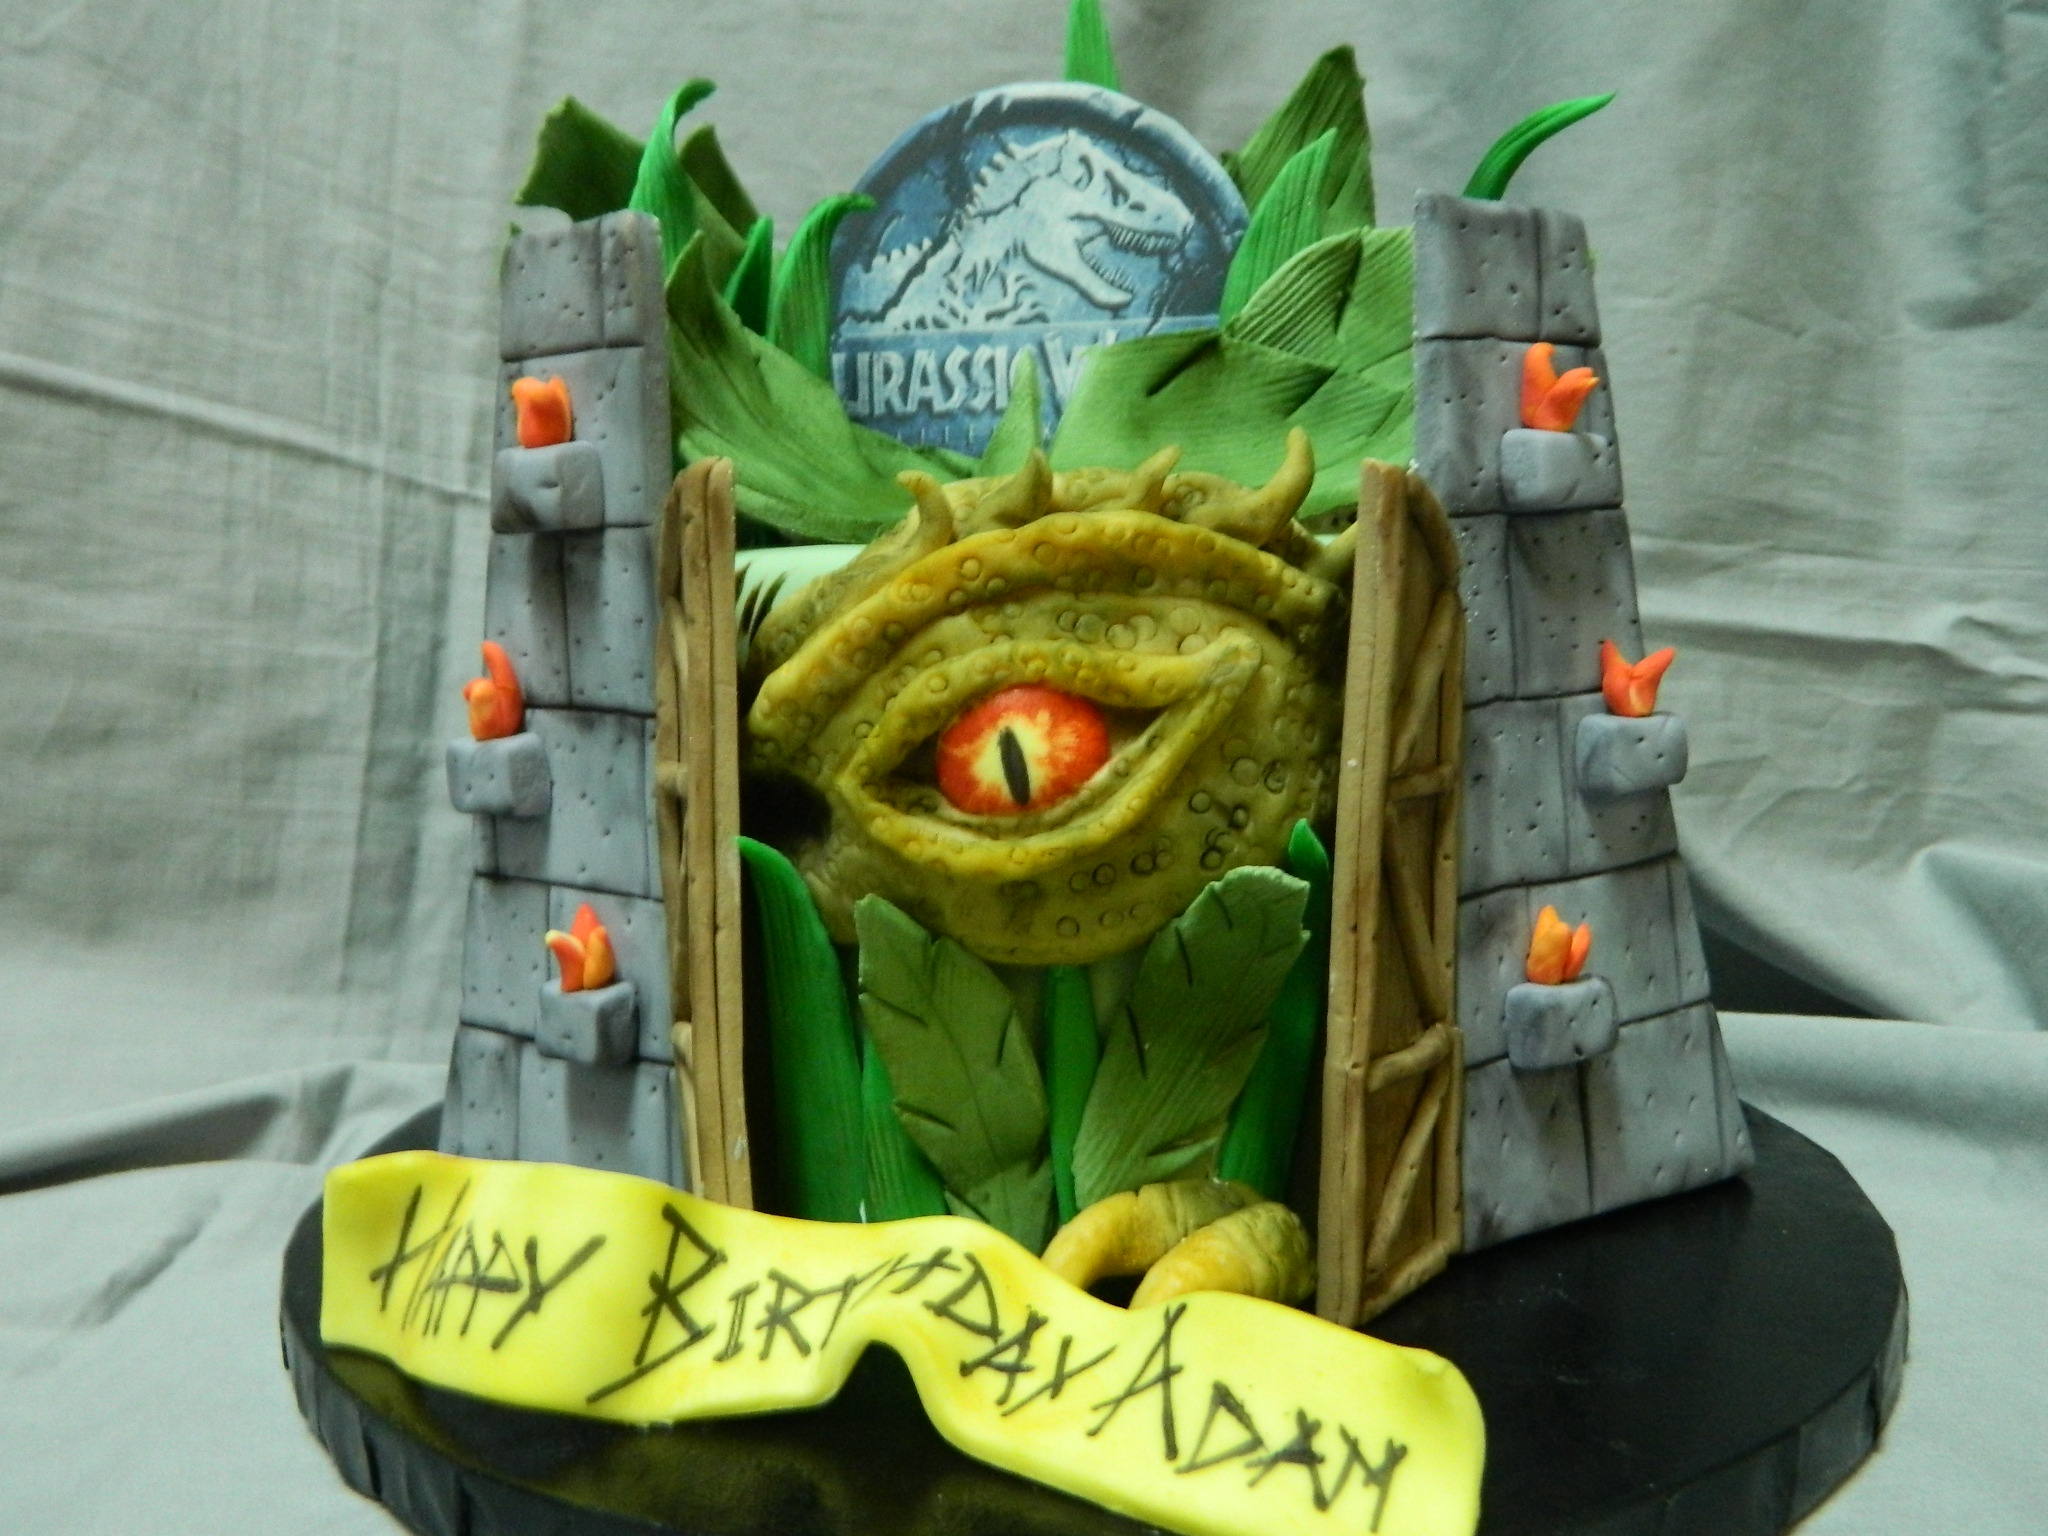 Jurrasic World themed custom birthday cake